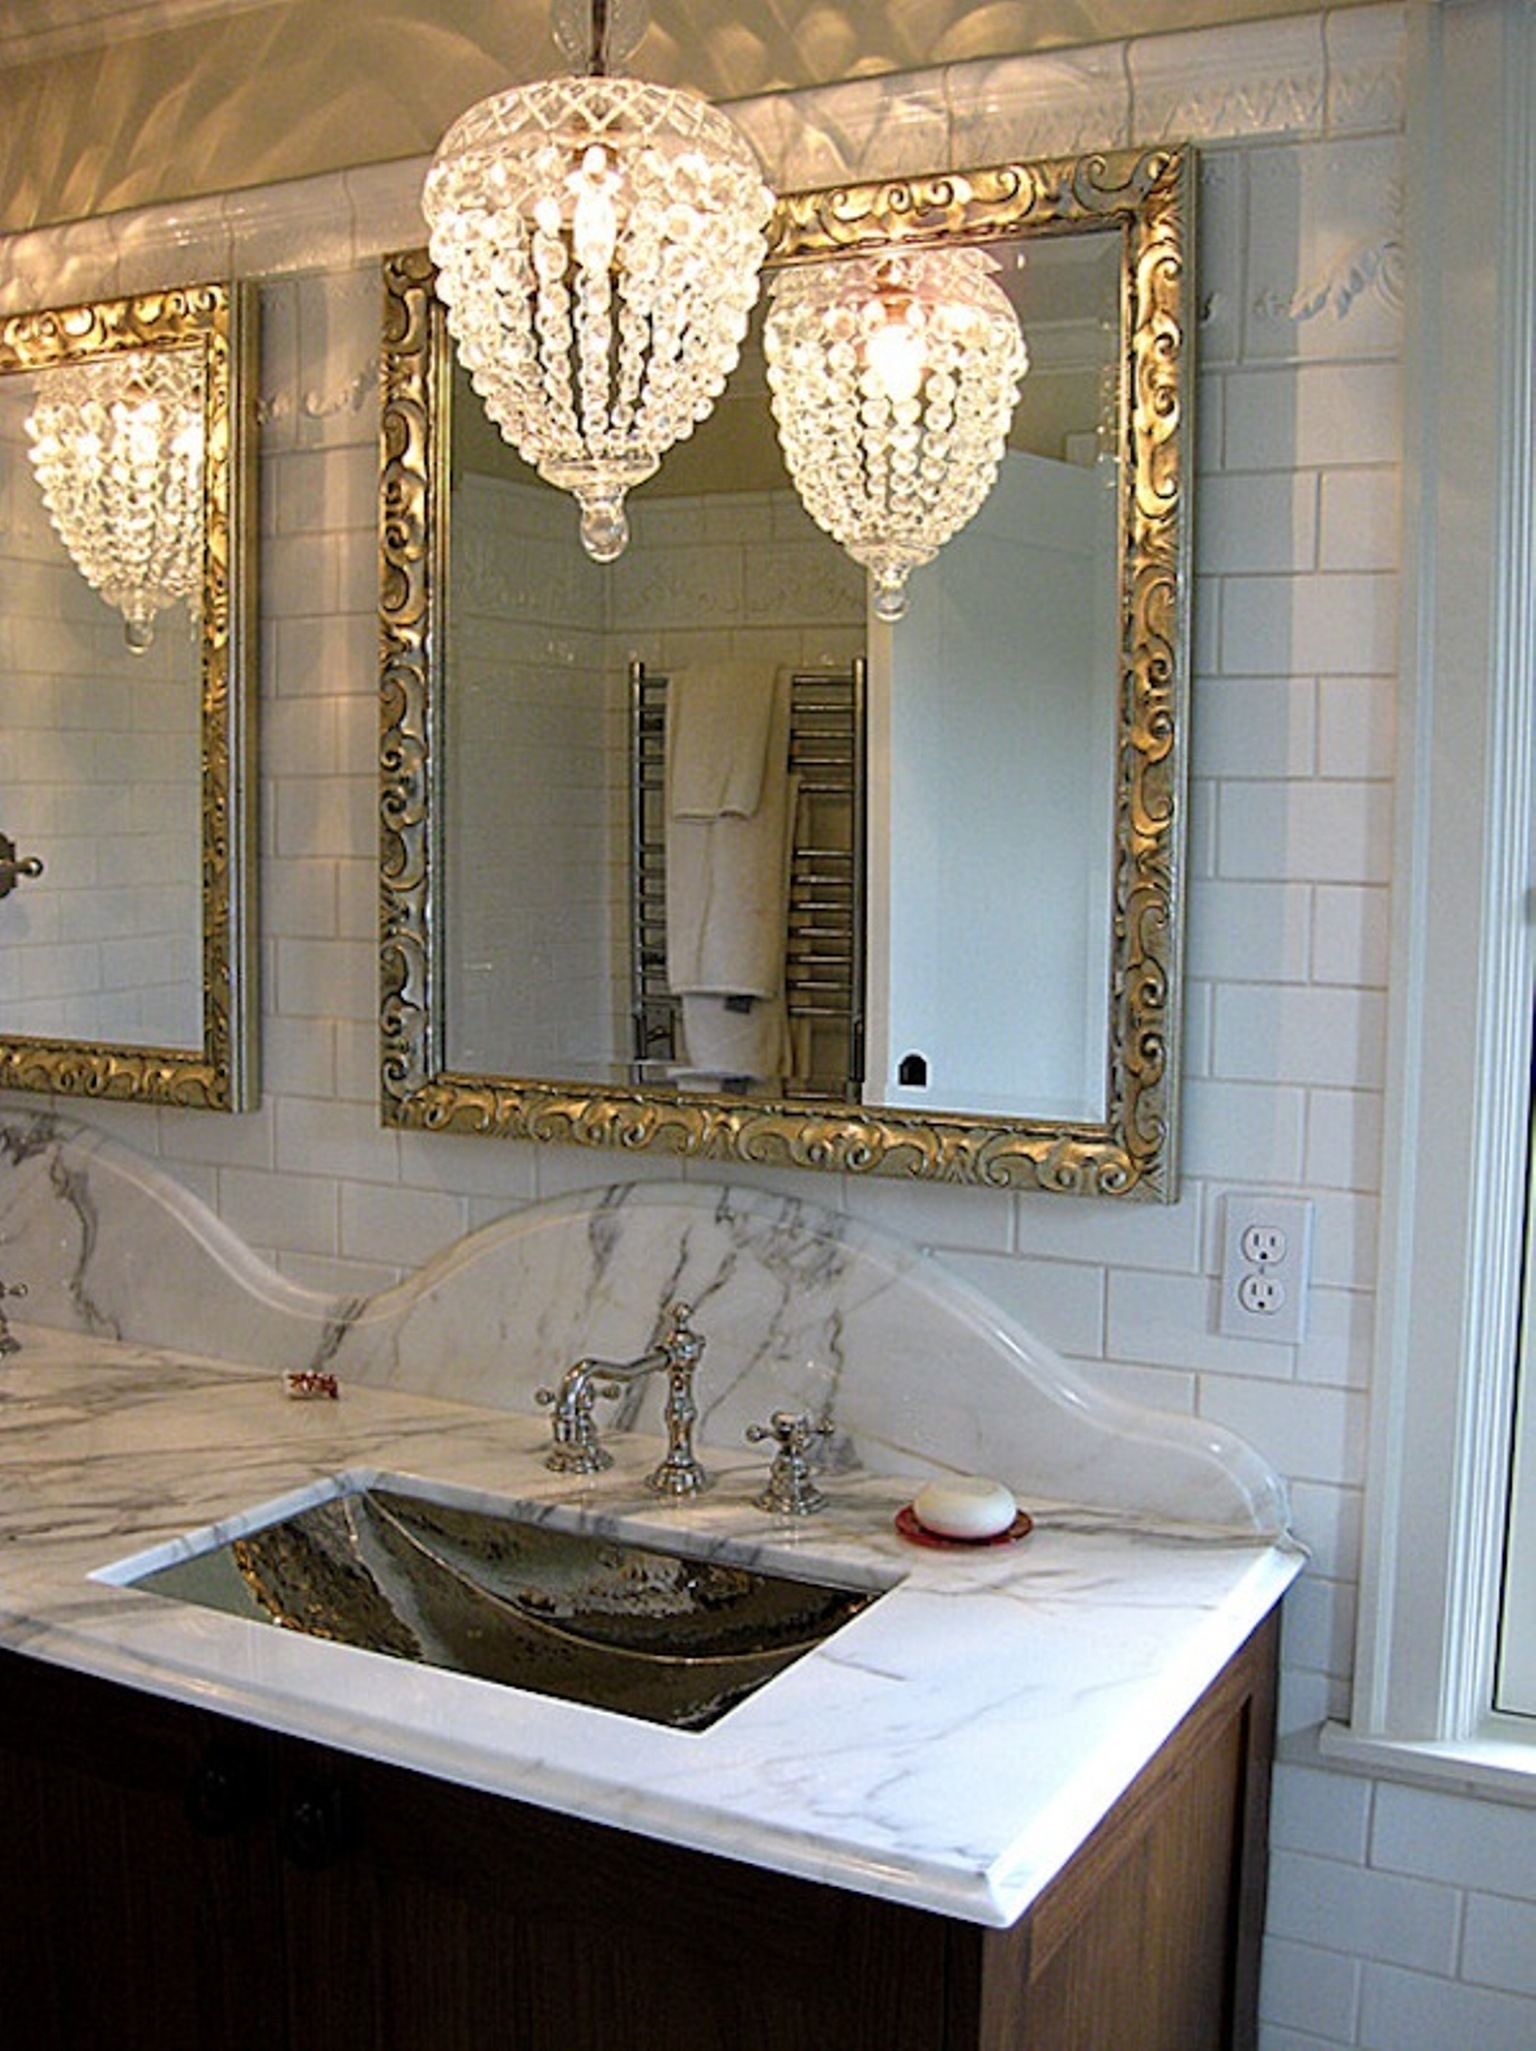 Ideas Of Bathroom Chandelier Lighting Interiordesignew Within Bathroom Chandelier Lighting (Image 14 of 25)